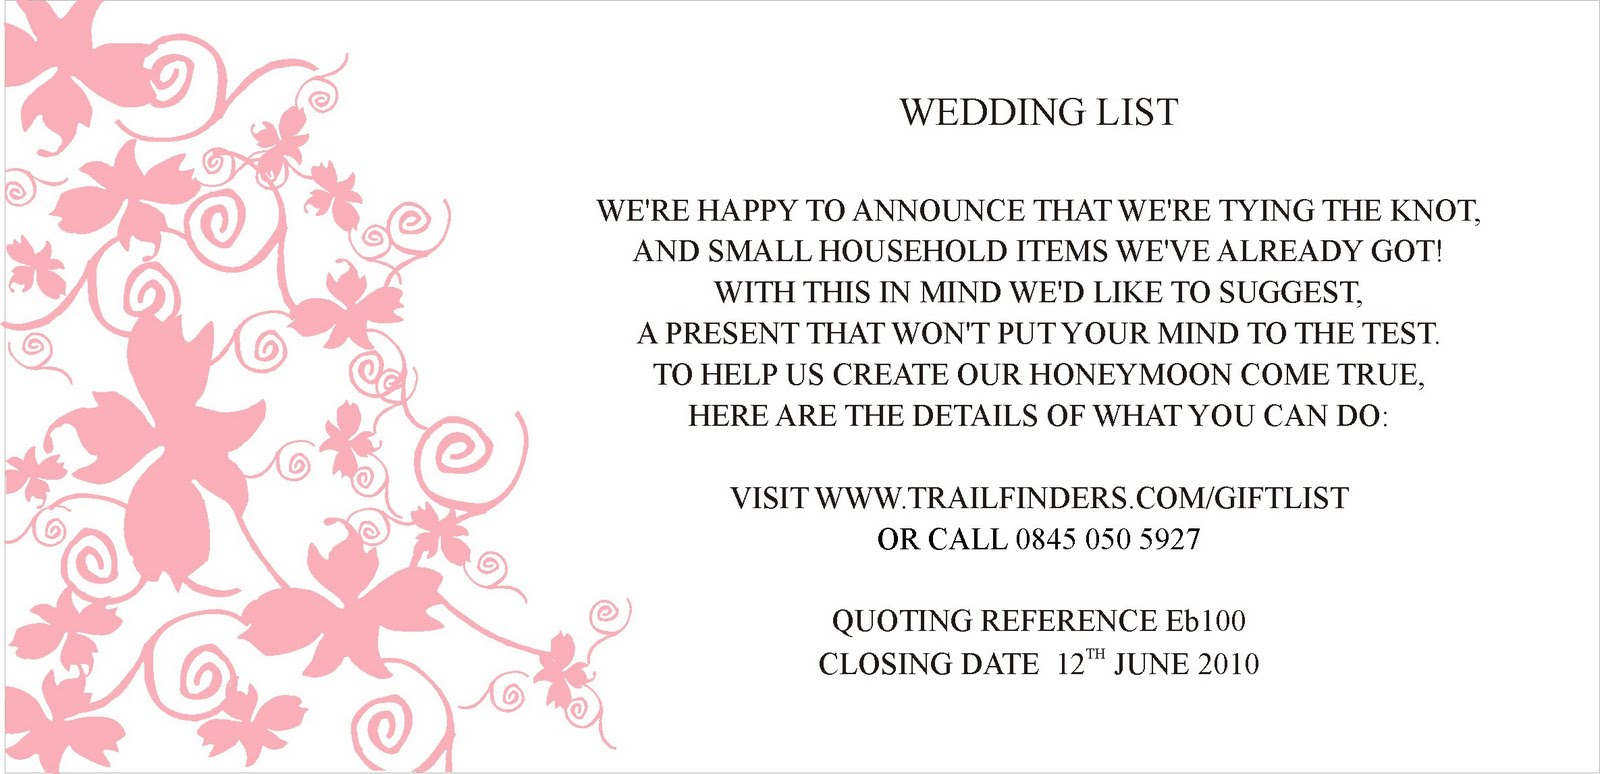 Wedding Gift Poems For Honeymoon Vouchers : ... for weddings, invitations and stationery: Wedding Gift Card